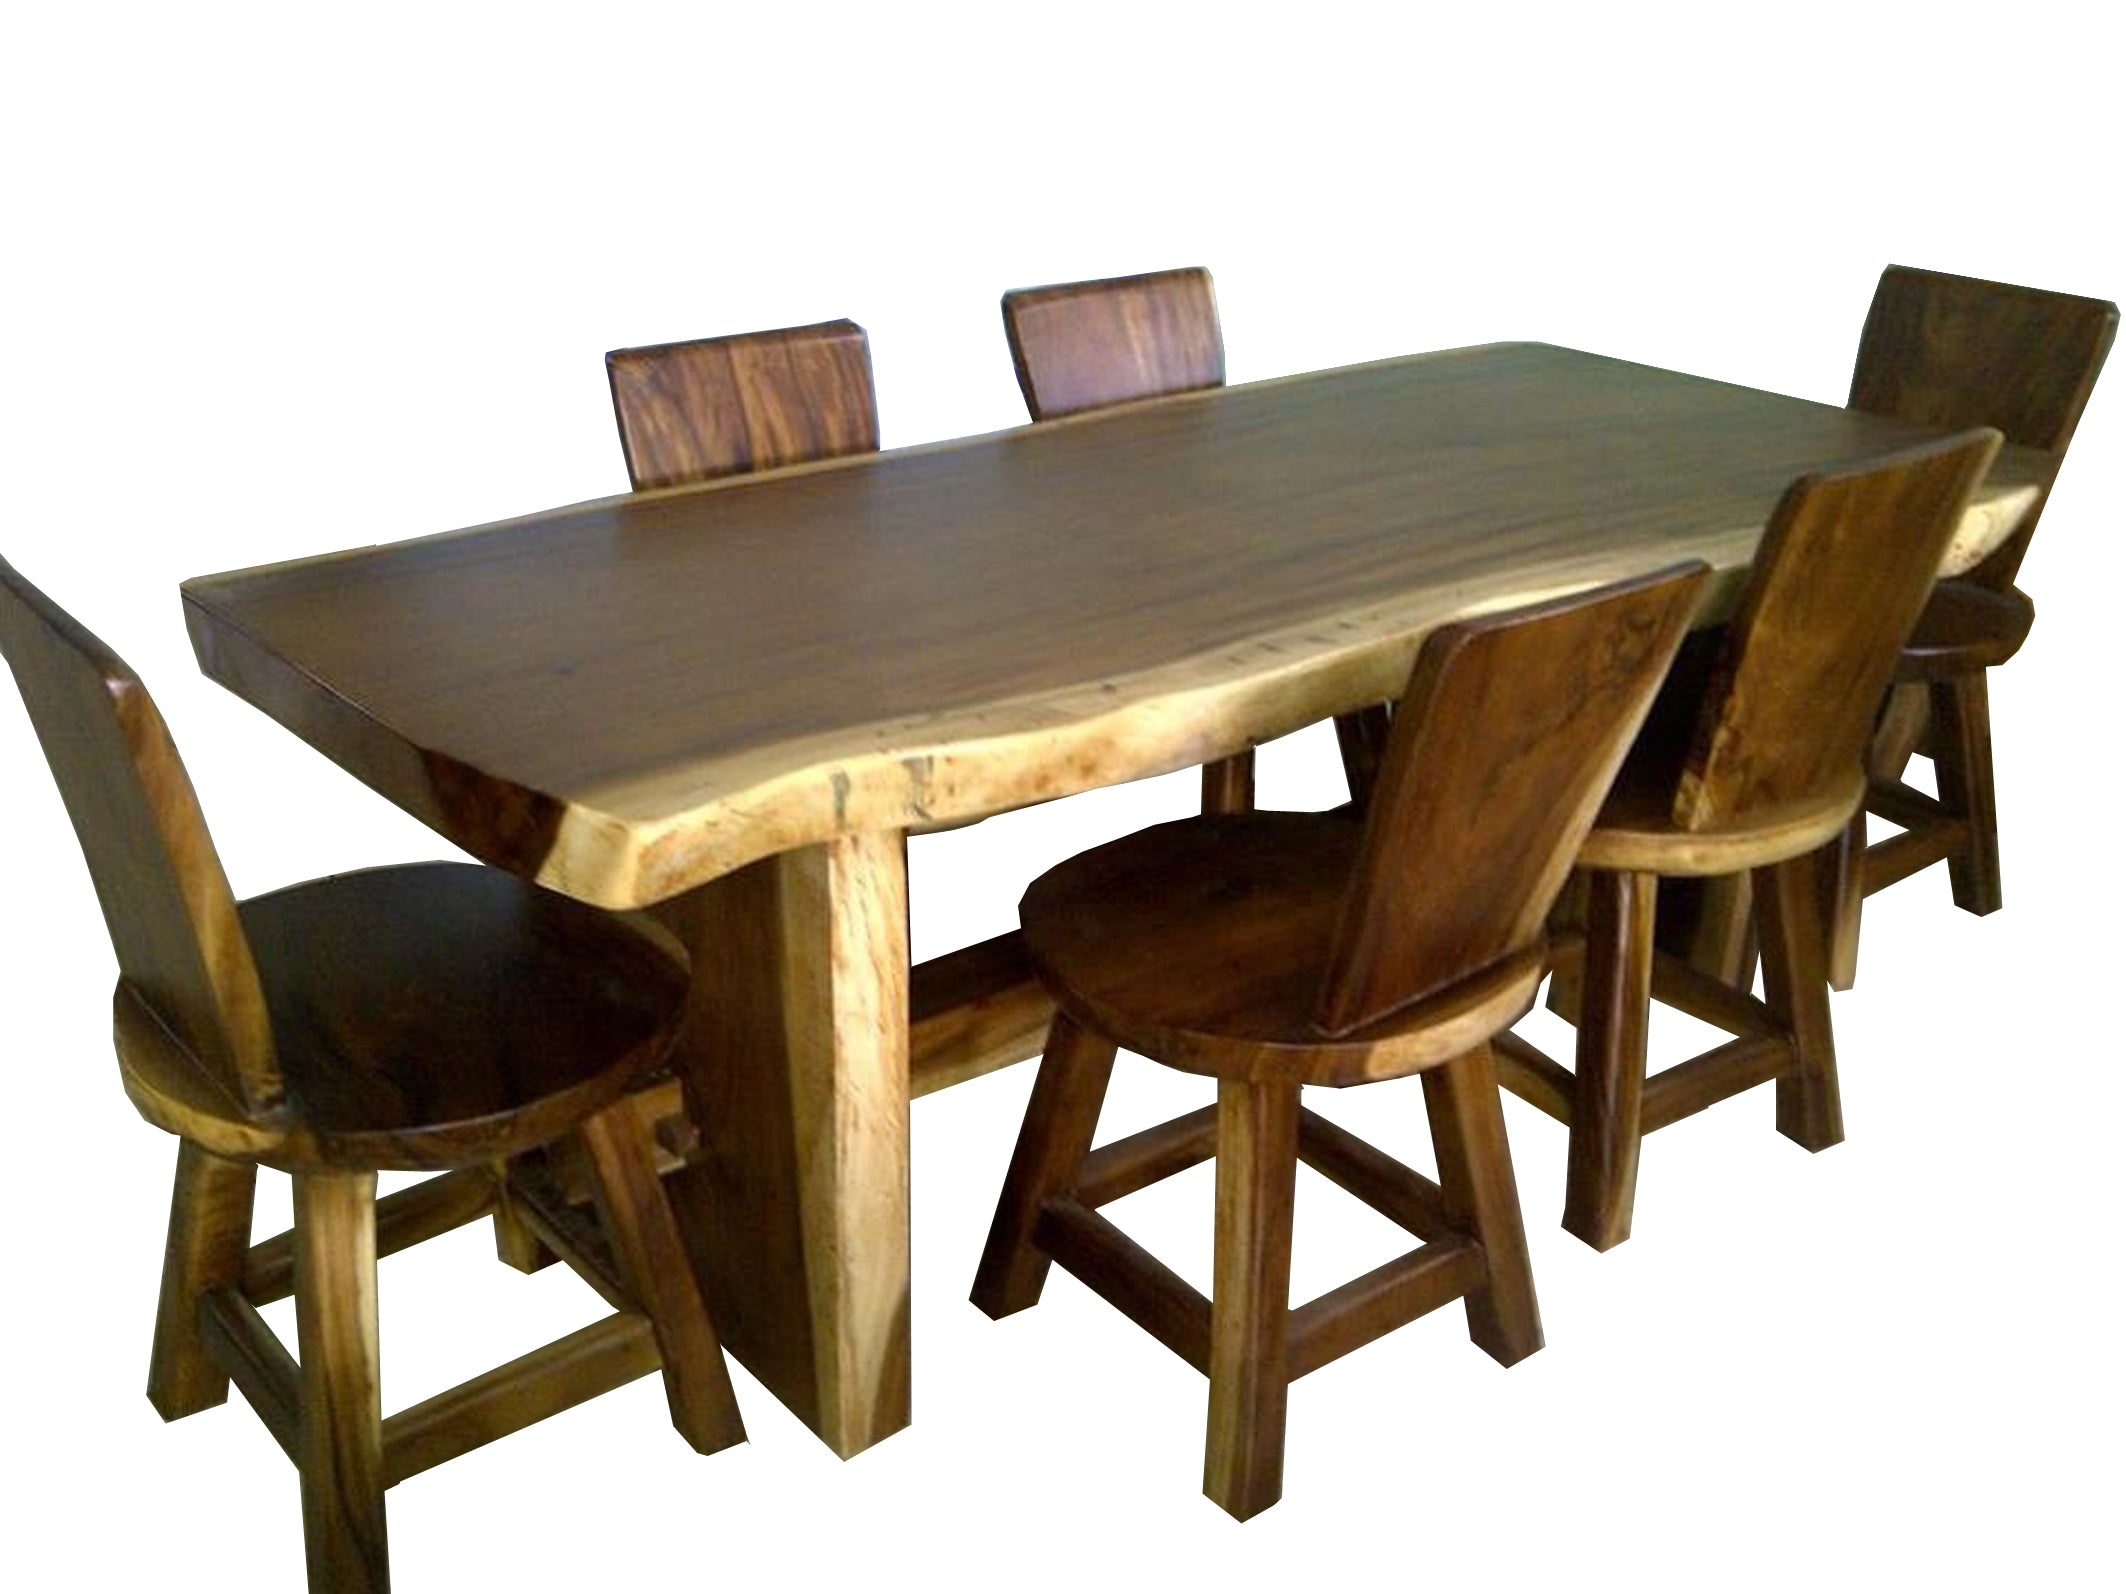 living edge furniture. Living Edge Furniture. Live Slab Solid Wood Table (200cm) With Wooden Legs Furniture